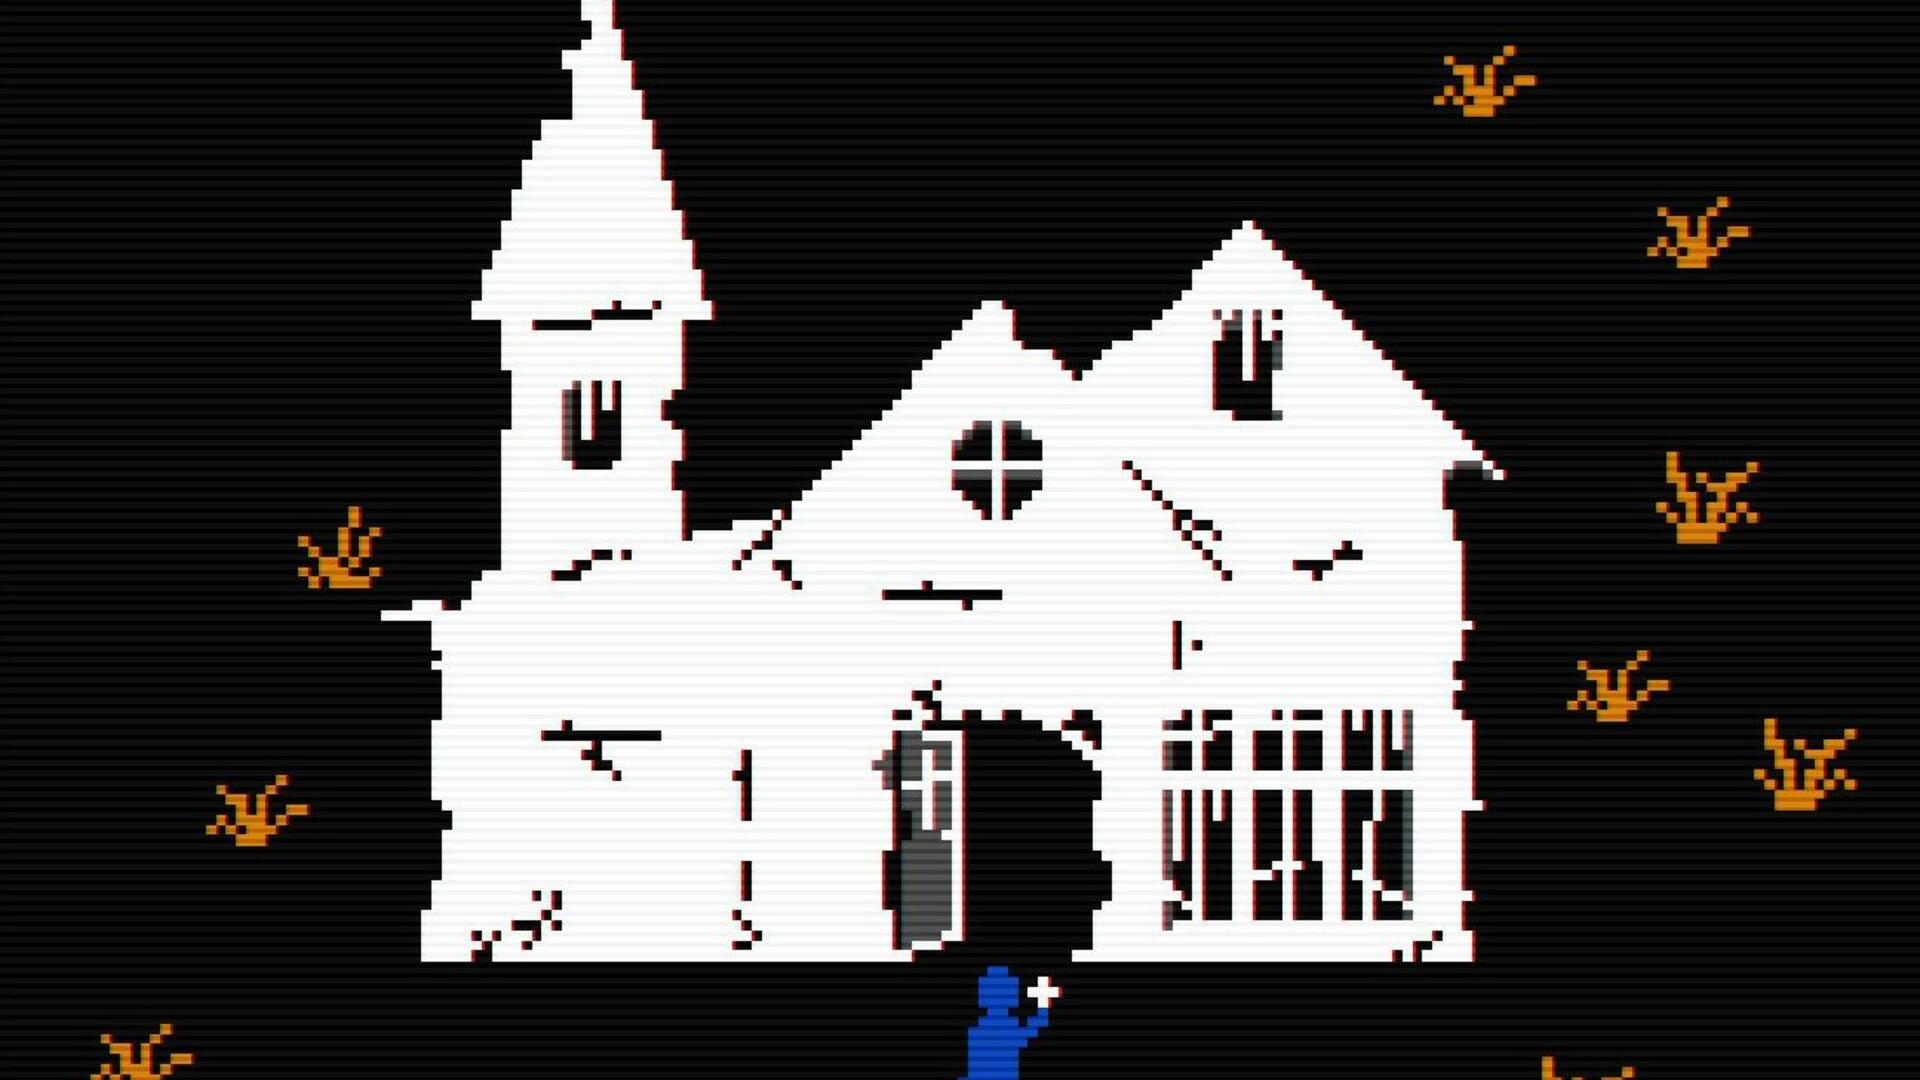 Simple Sprites, Potent Frights: How Sprite-based Horror Games Can Produce Genuinely Big Scares